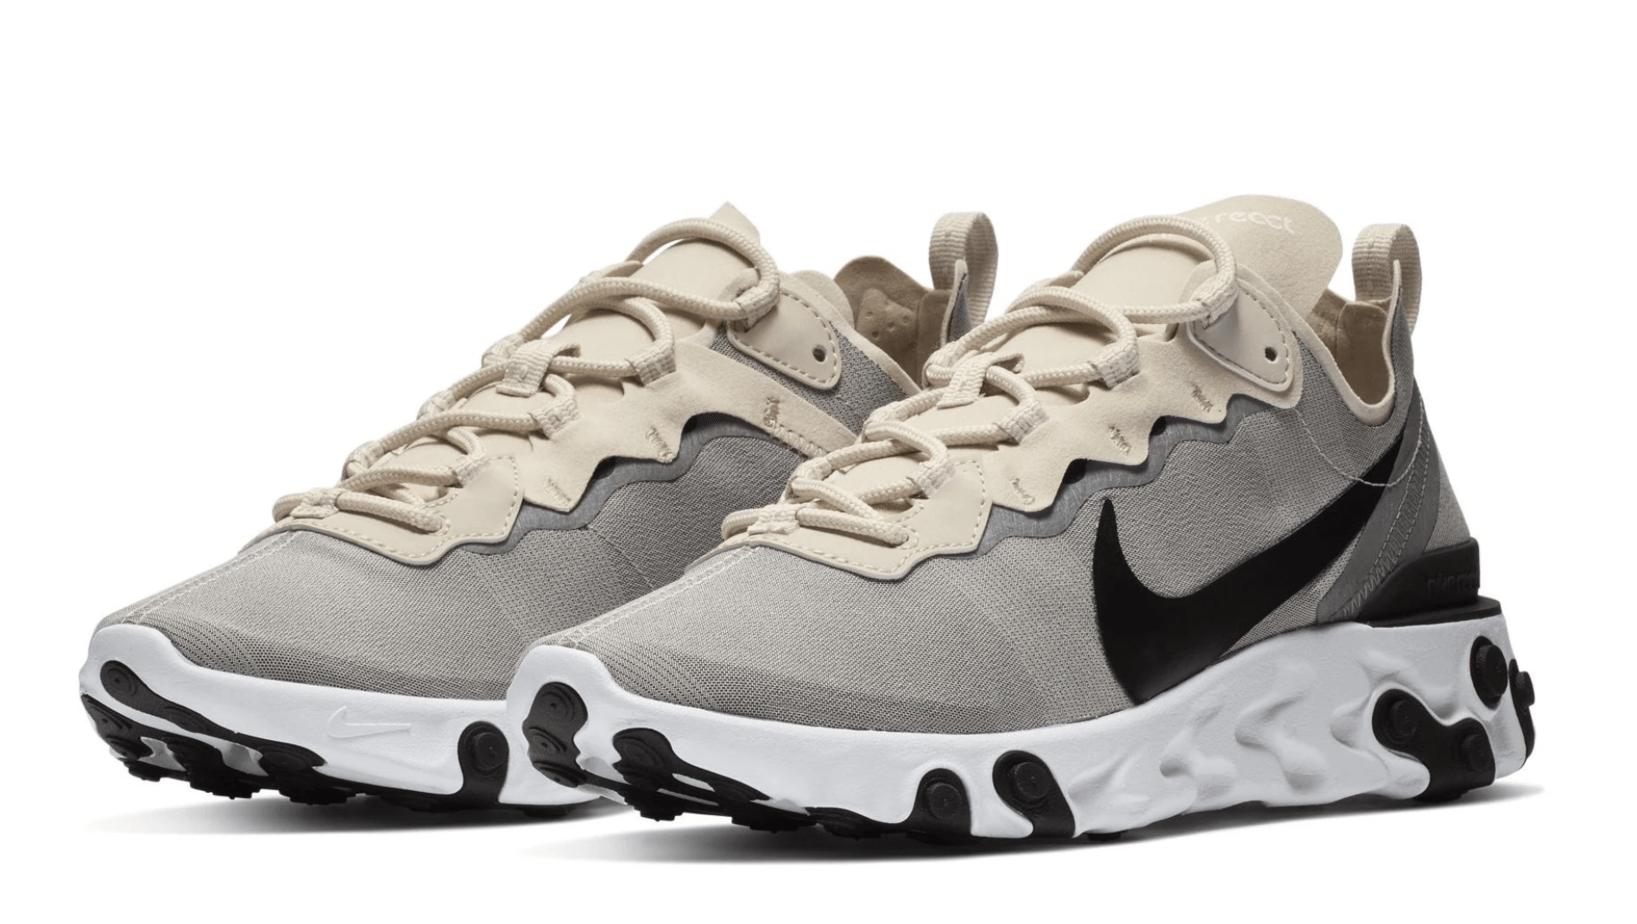 76b11a85acad Nike s React technology isn t even a year old and already it s made a  respectable name for itself. With a handful of models readily available